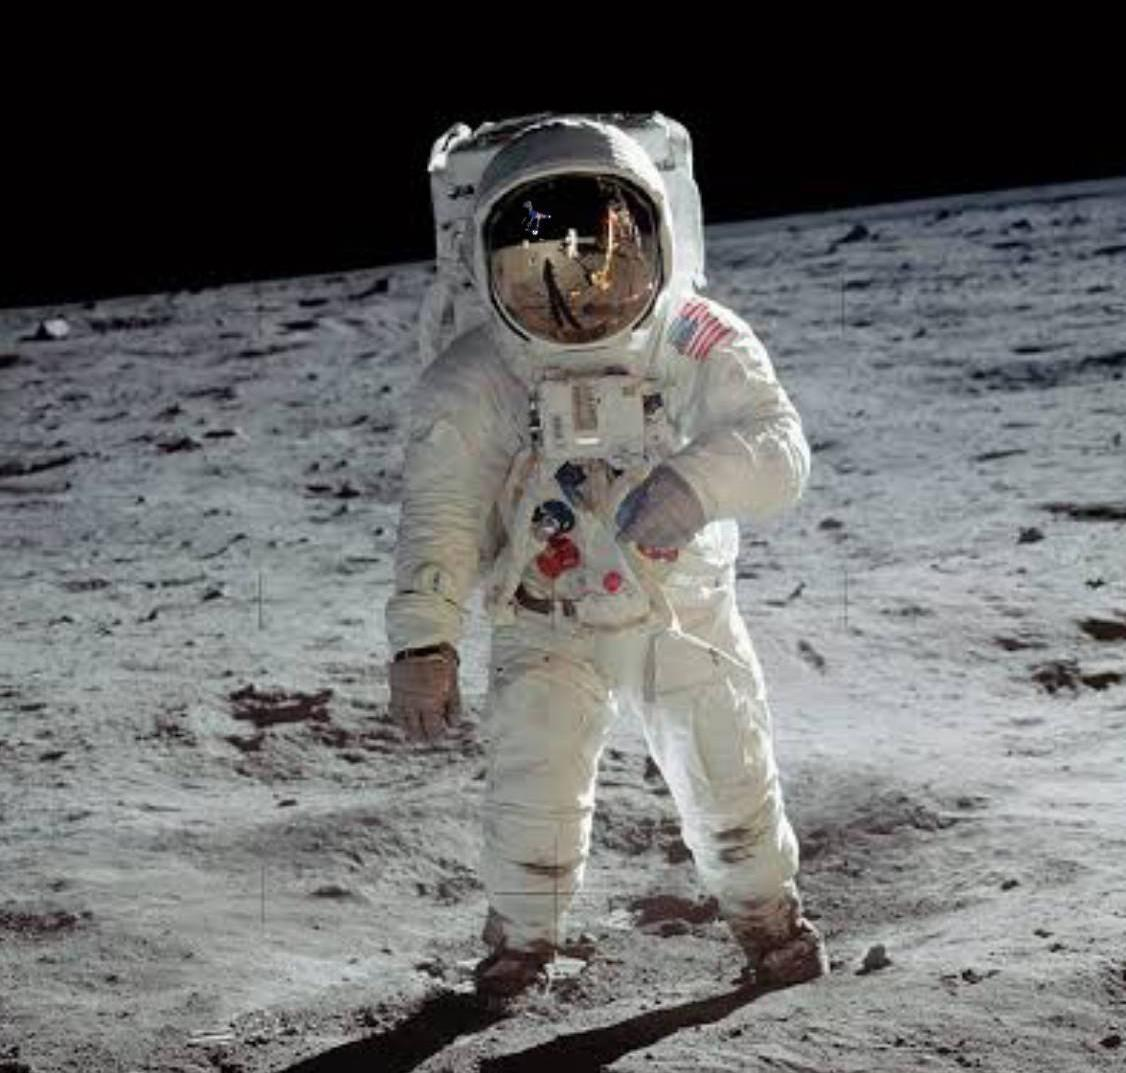 Leaked NASA image (reflection in the visor). Thanks u/theperfectcheckmate for risking your life to spread this. https://www.reddit.com/r/DinosaurEarth?utm_medium=android_app&utm_source=share…